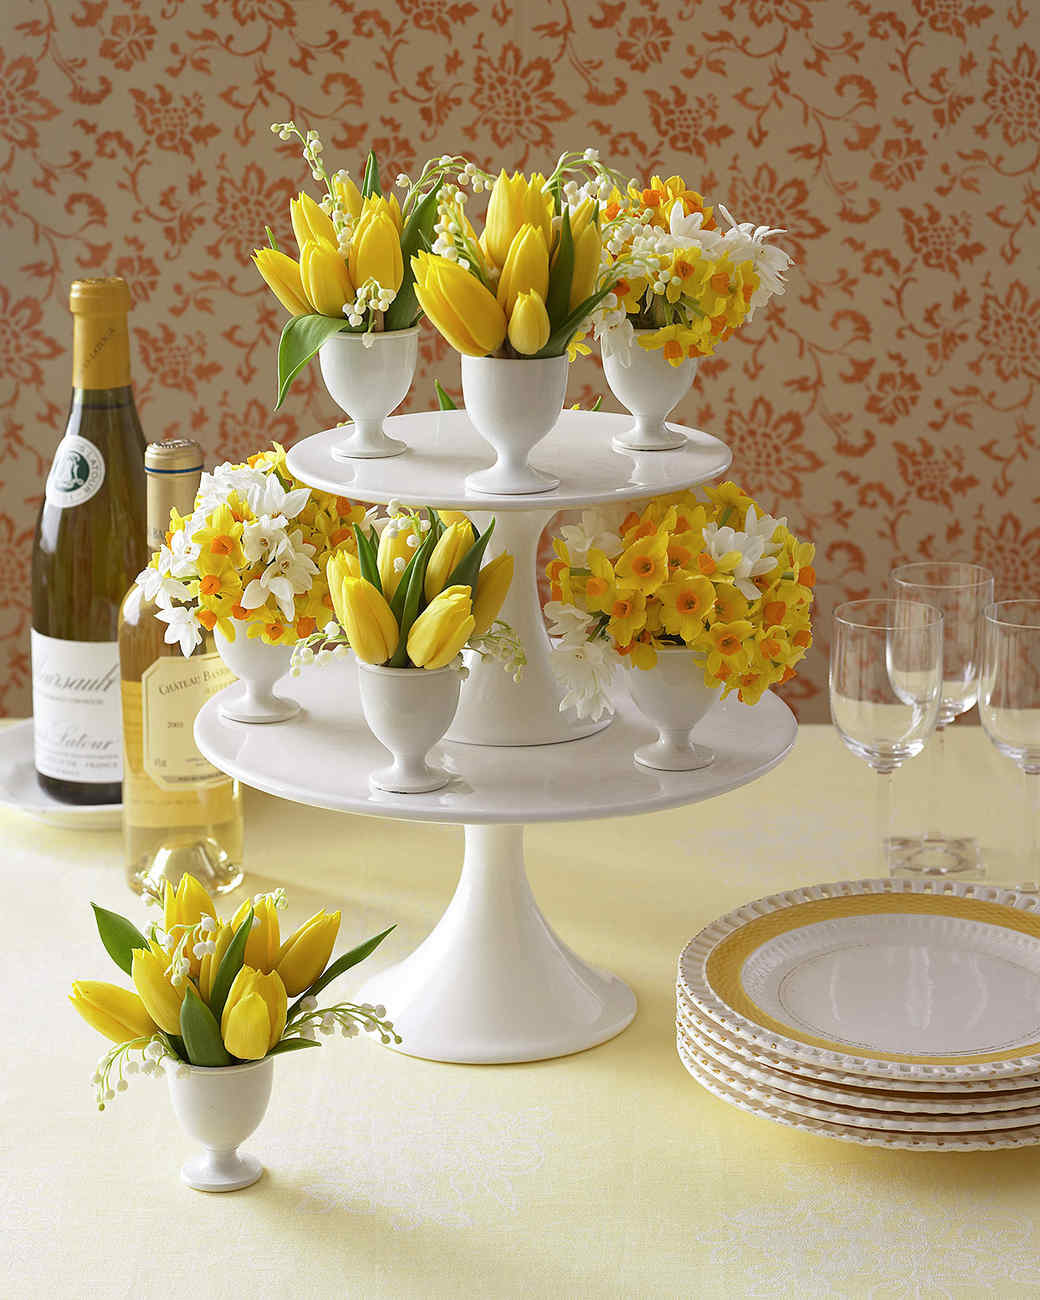 & Decorating for Easter | Martha Stewart